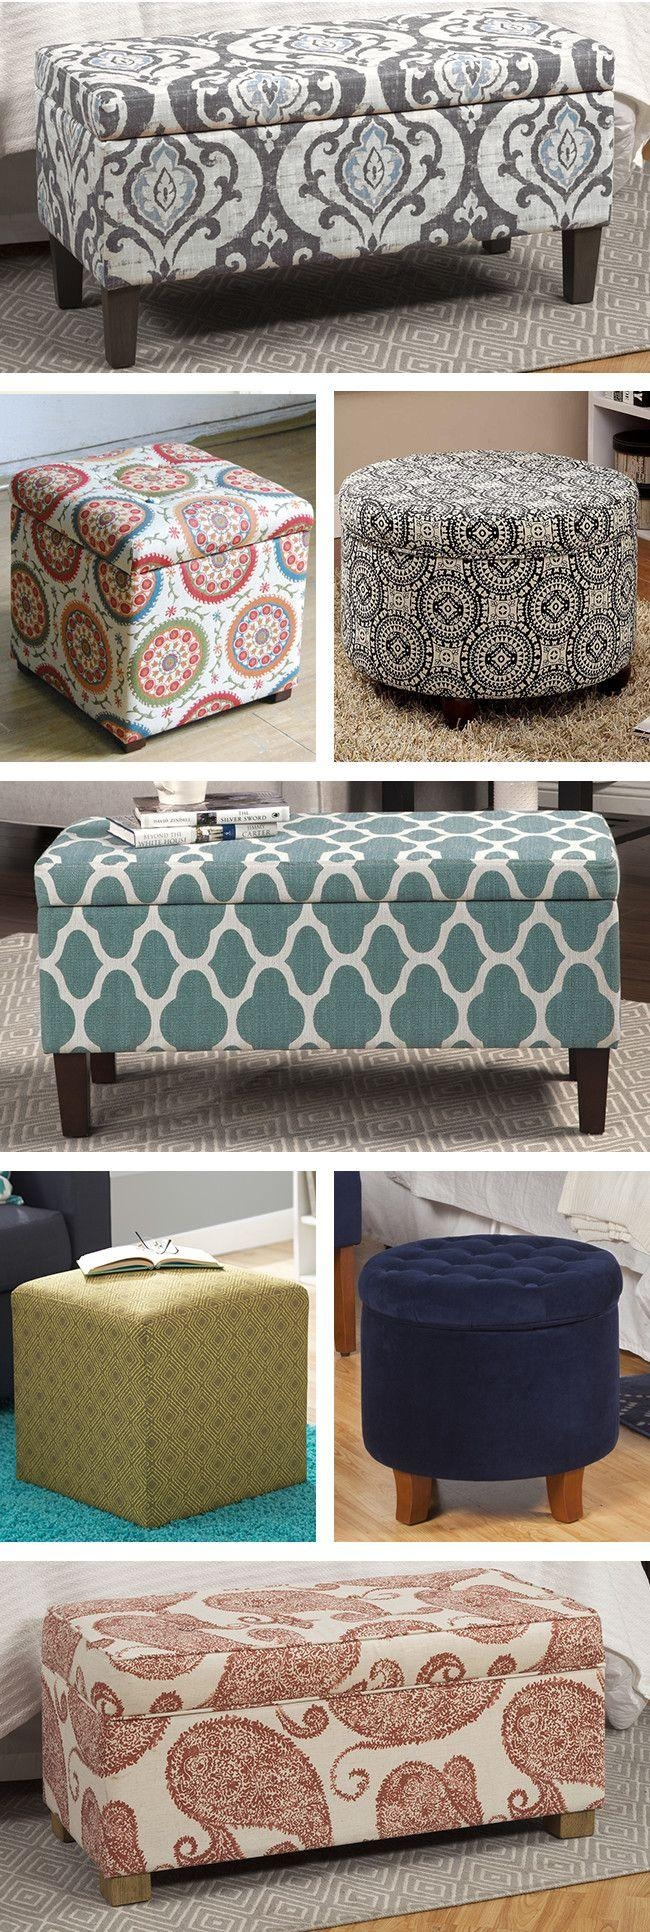 Sofa Pouffe 48 Best Sofa Selectionzzzz Images On Pinterest